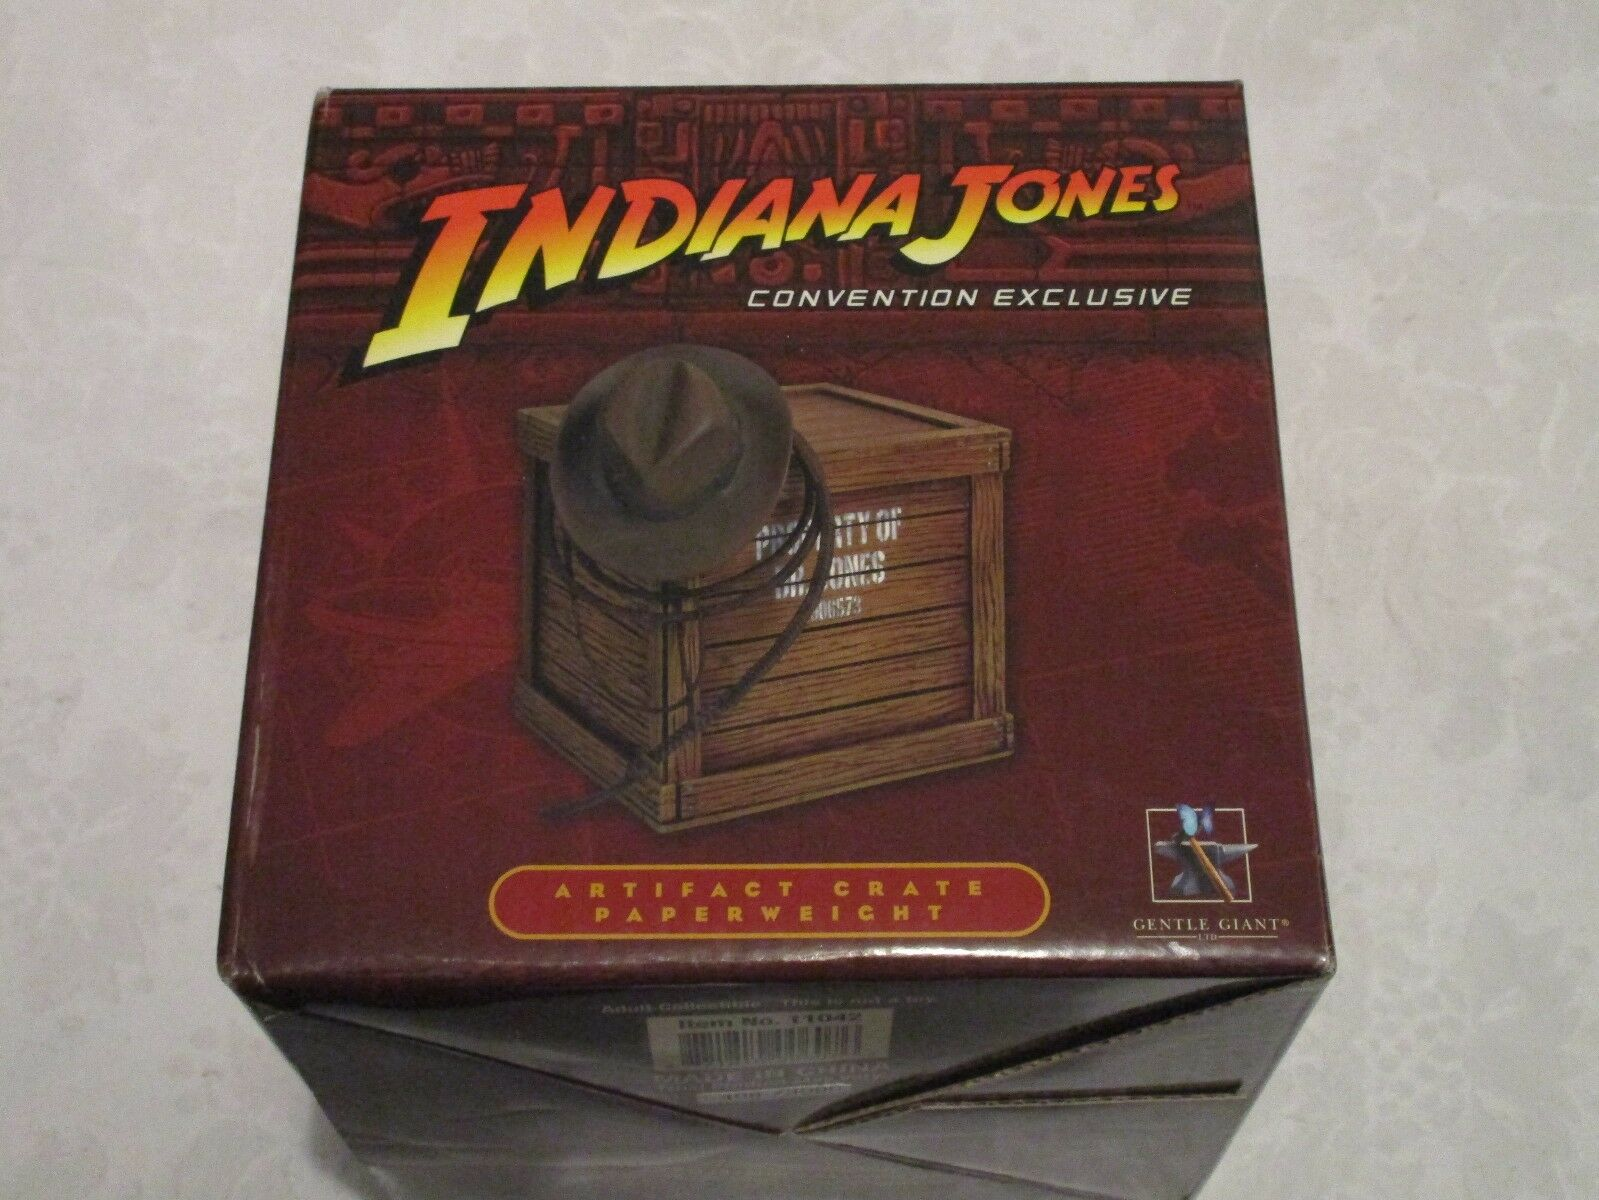 Gentle Giant Indiana Jones  Convention Exclusive Artifact Crate Paperweight  consegna veloce